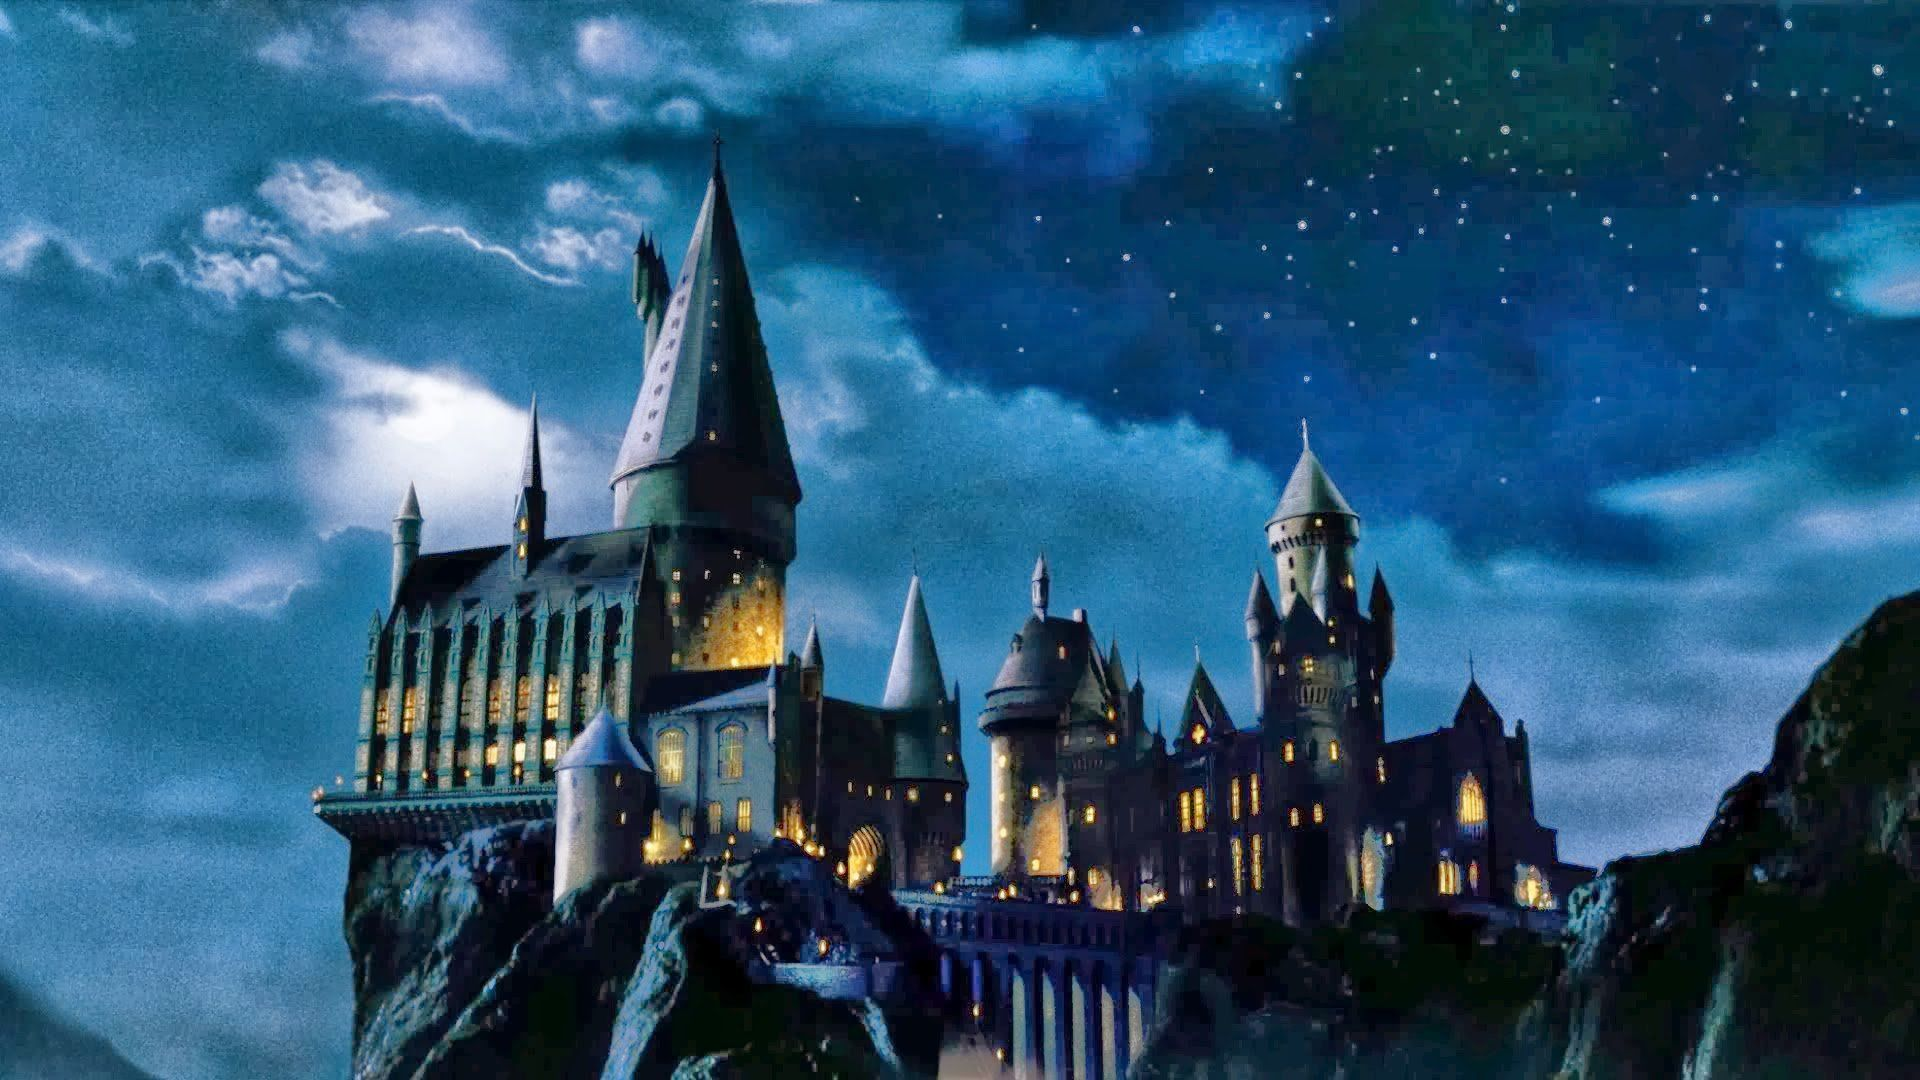 Hogwarts Castle Hd Wallpaper Desktop Wallpaper Harry Potter Harry Potter Background Harry Potter Wallpaper